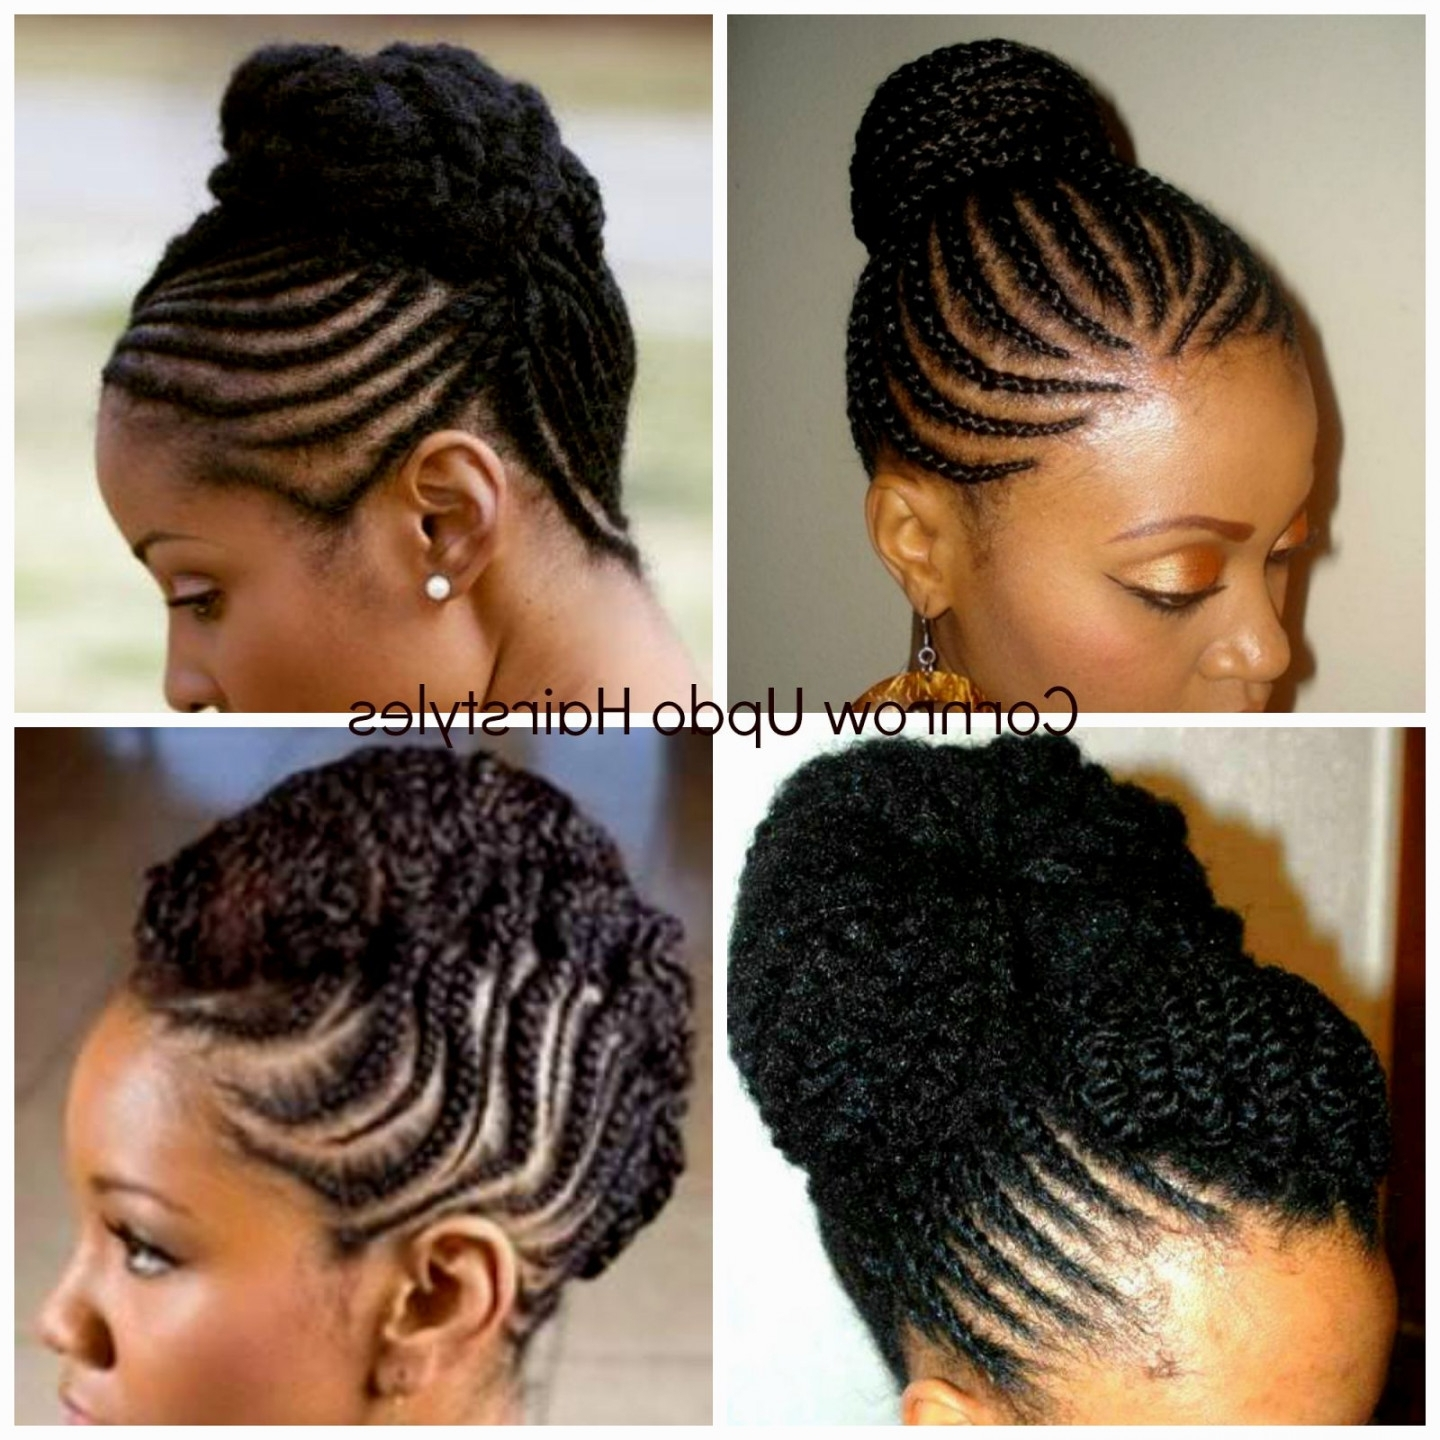 Cornrow Updo Hairstyles 2016 | Hairstyles Ideas | Latest Hairstyles With Cornrow Updo Hairstyles (View 5 of 15)